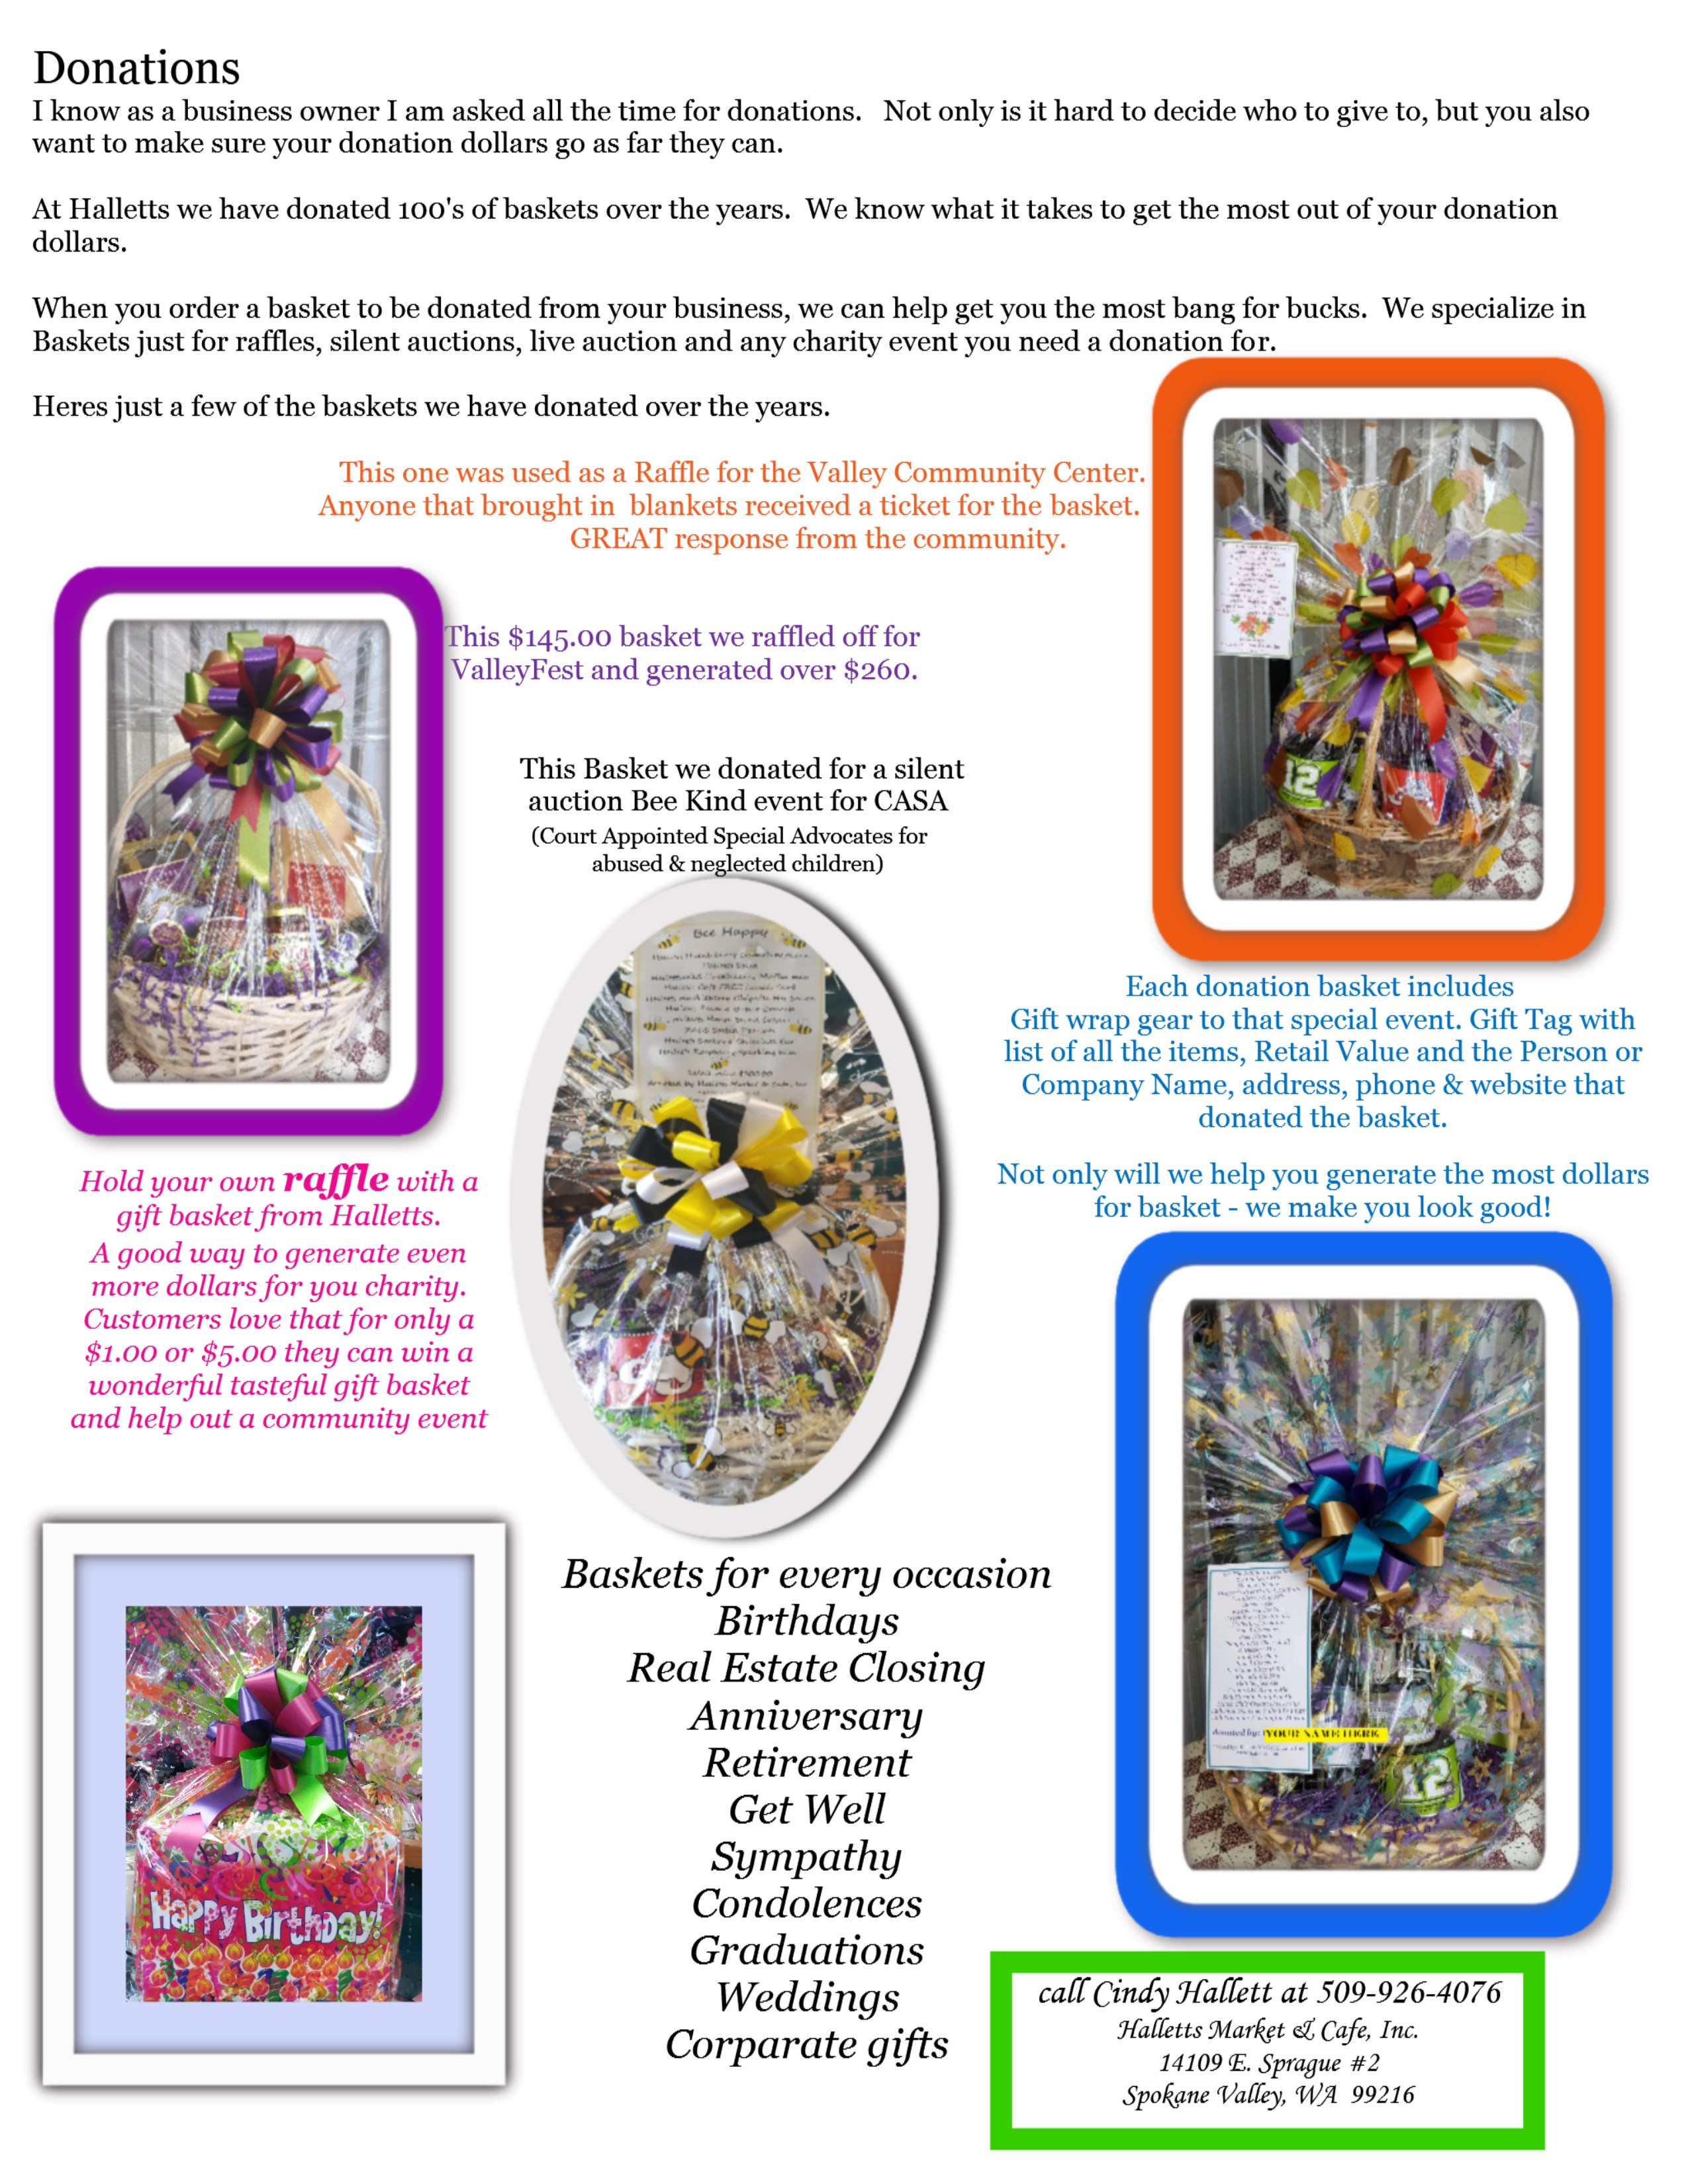 Tasteful Gifts Baskets for every occasion – Call and let us custom make a basket that conveys your sentiments, in a price range that works for you.